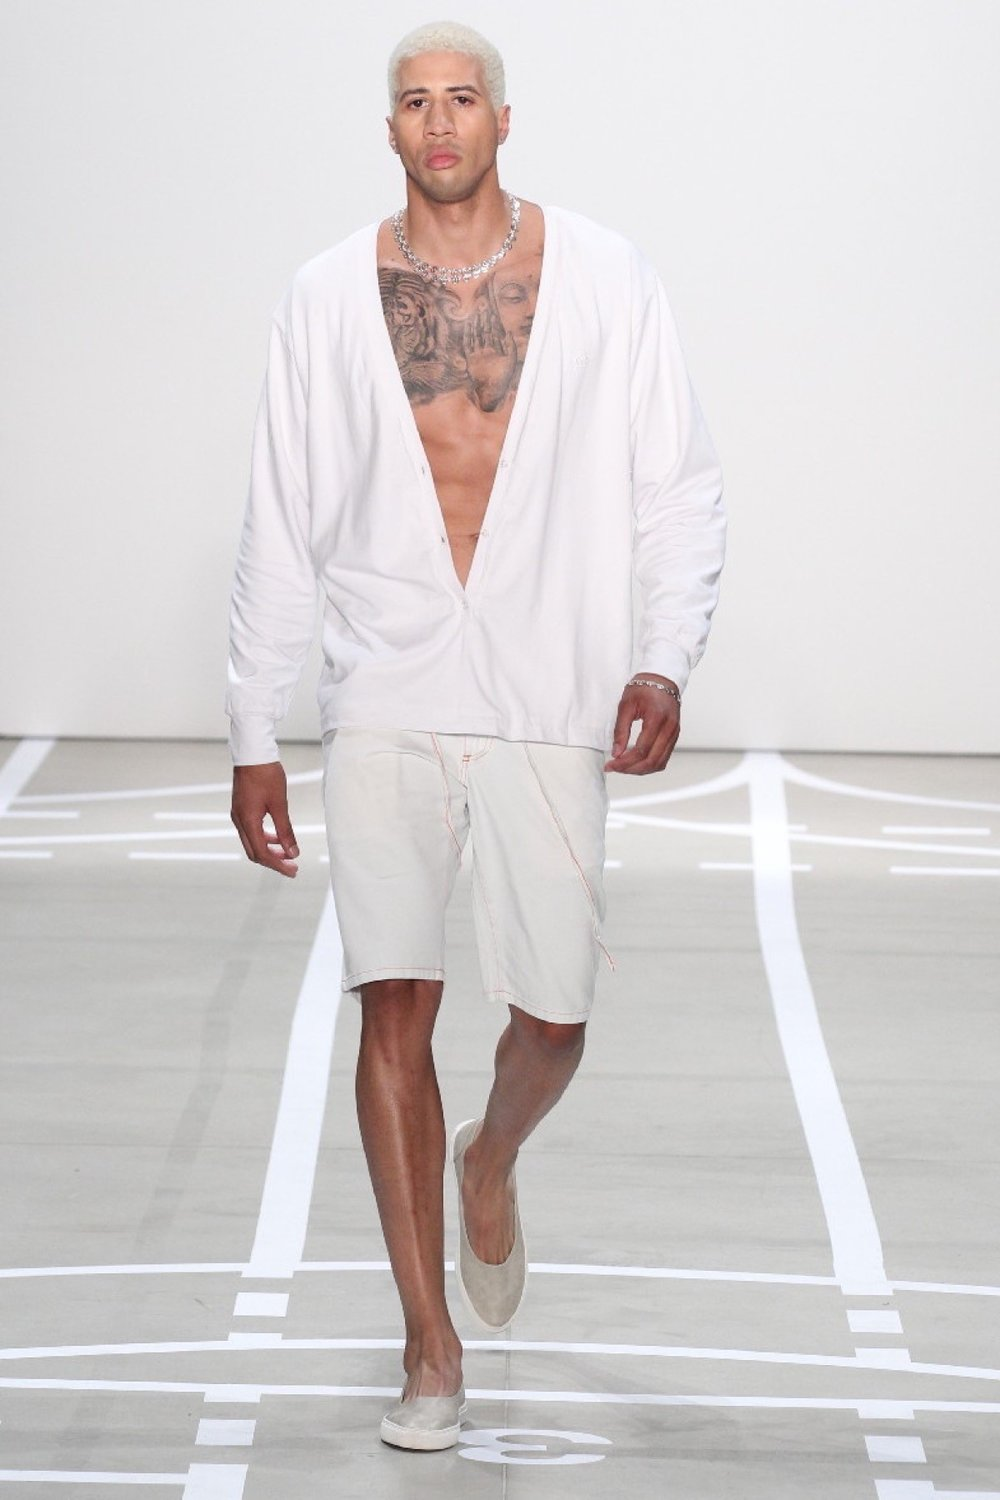 Telfar, Pic taken from    NYFW.com